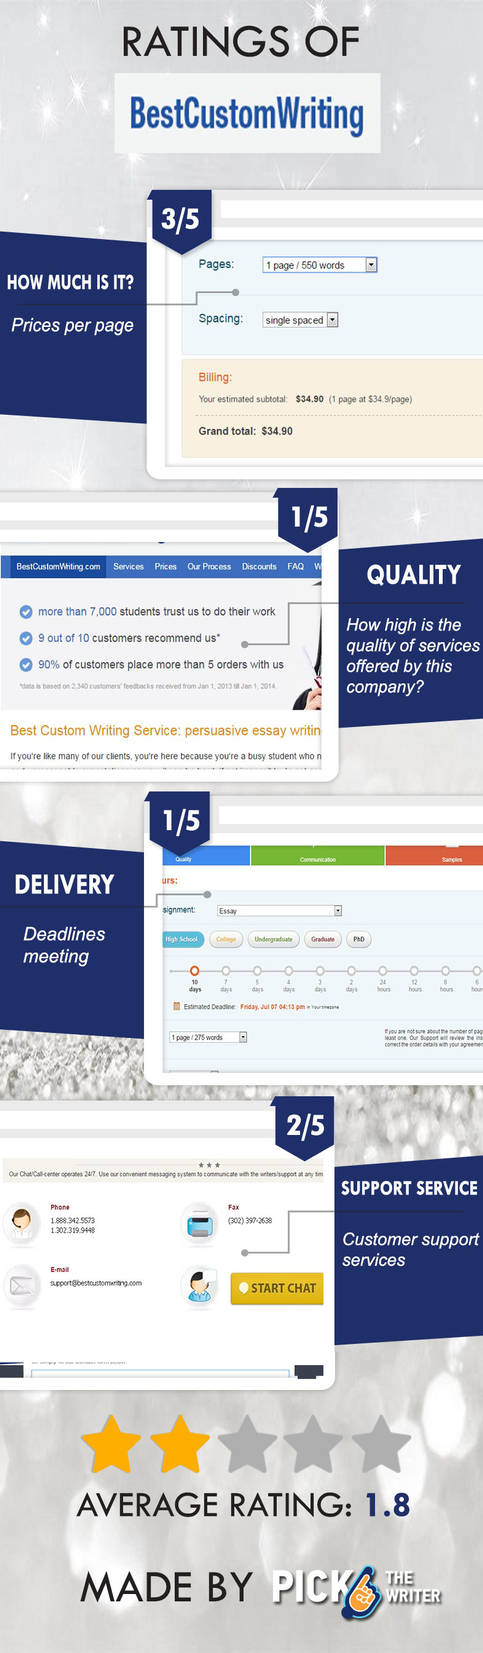 What is so exclusive about BestCustomWriting? by BirdJill